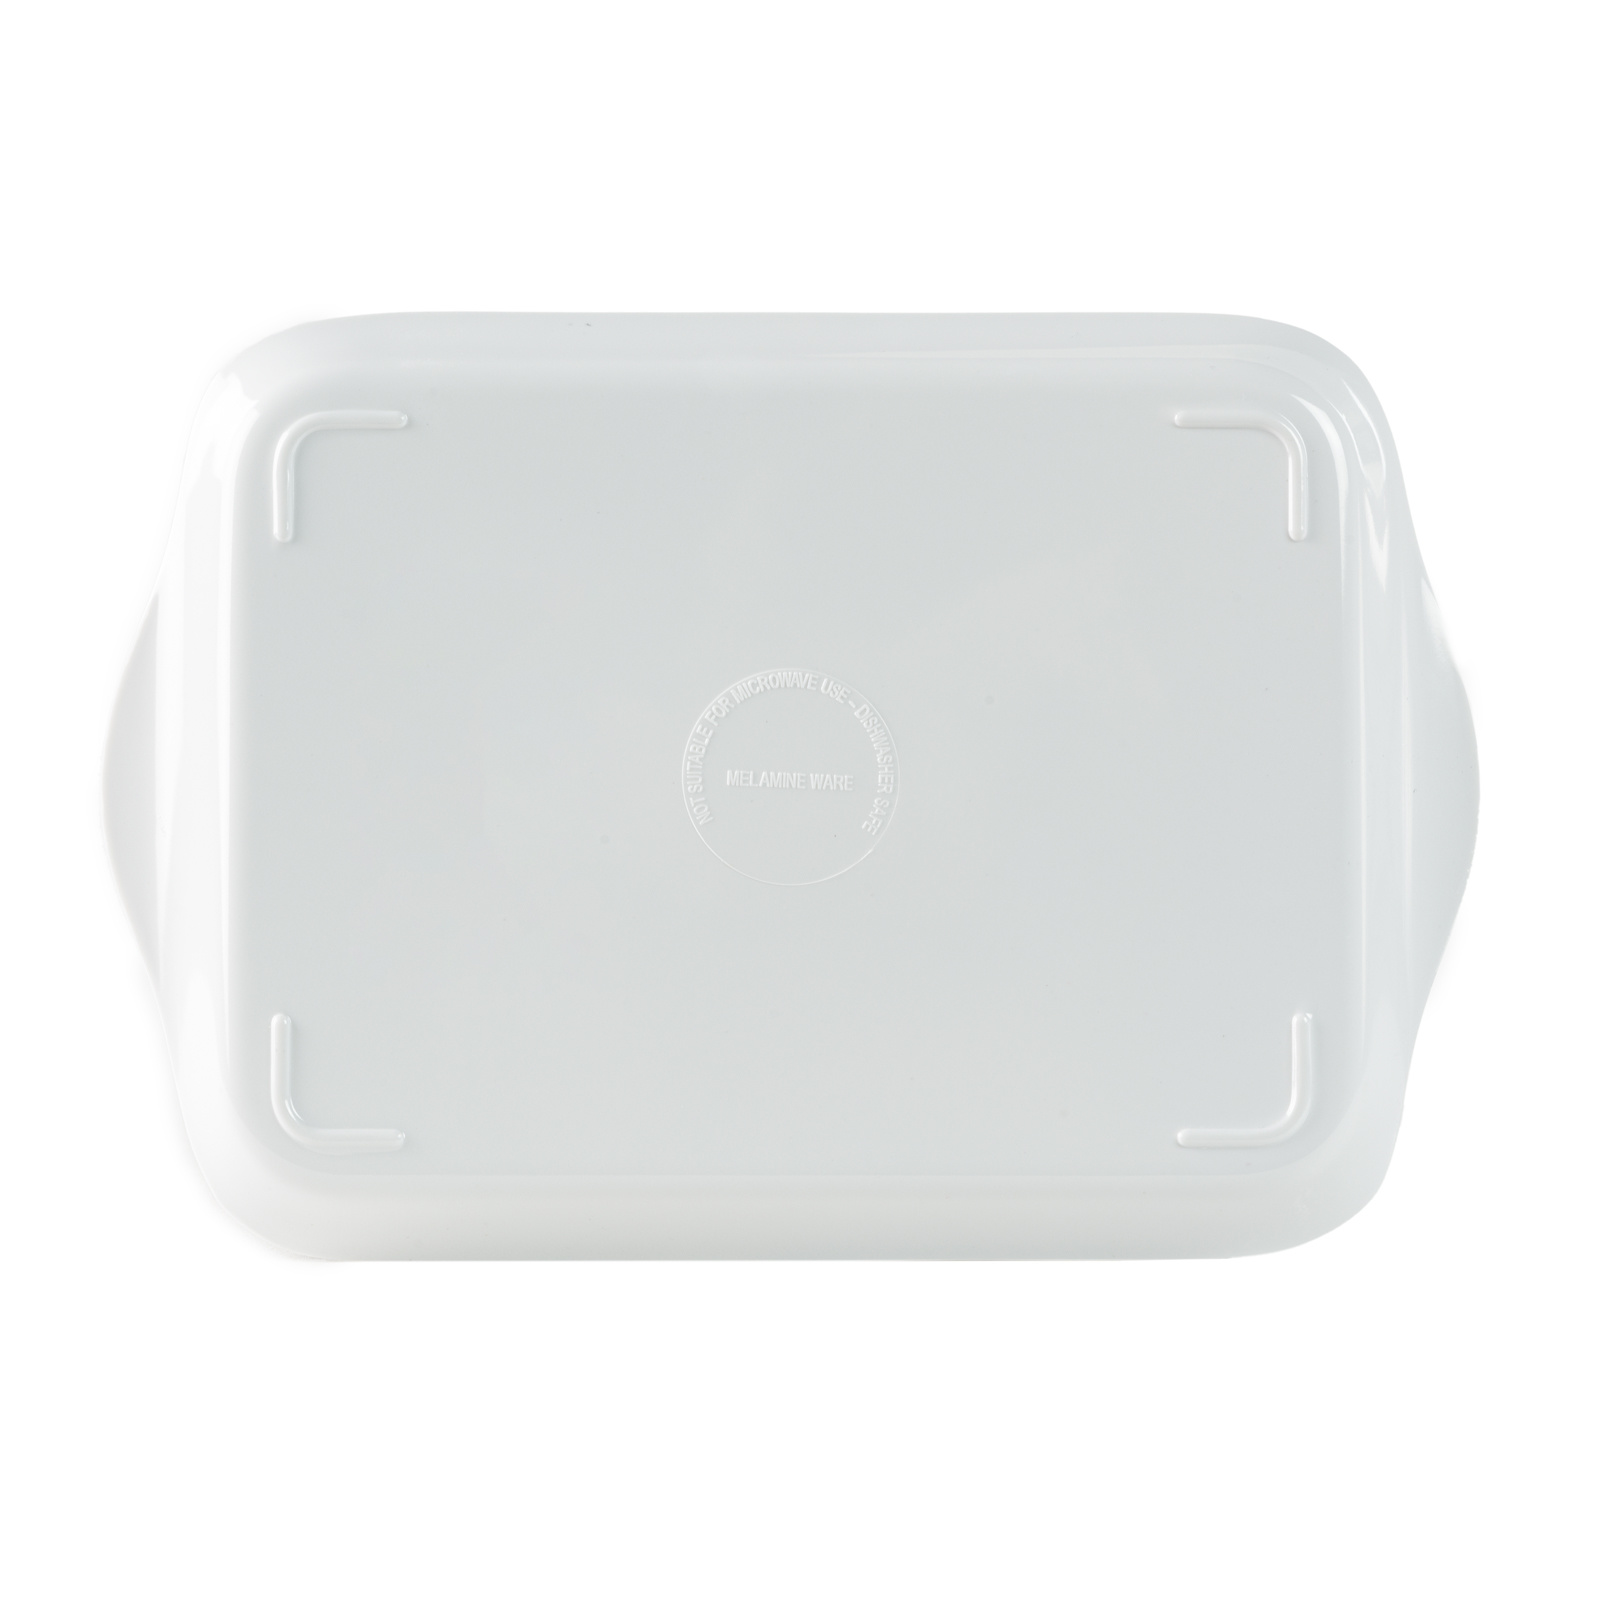 Mini Serving Tray - The orchard